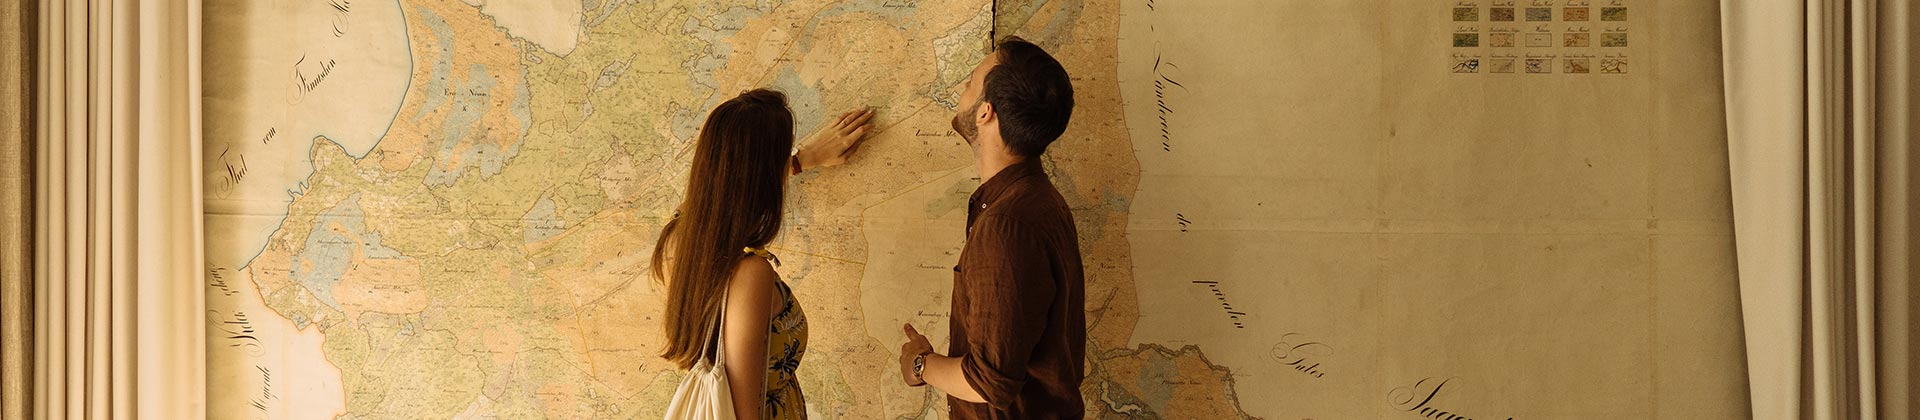 Couple in front of large map by Andri Peetso